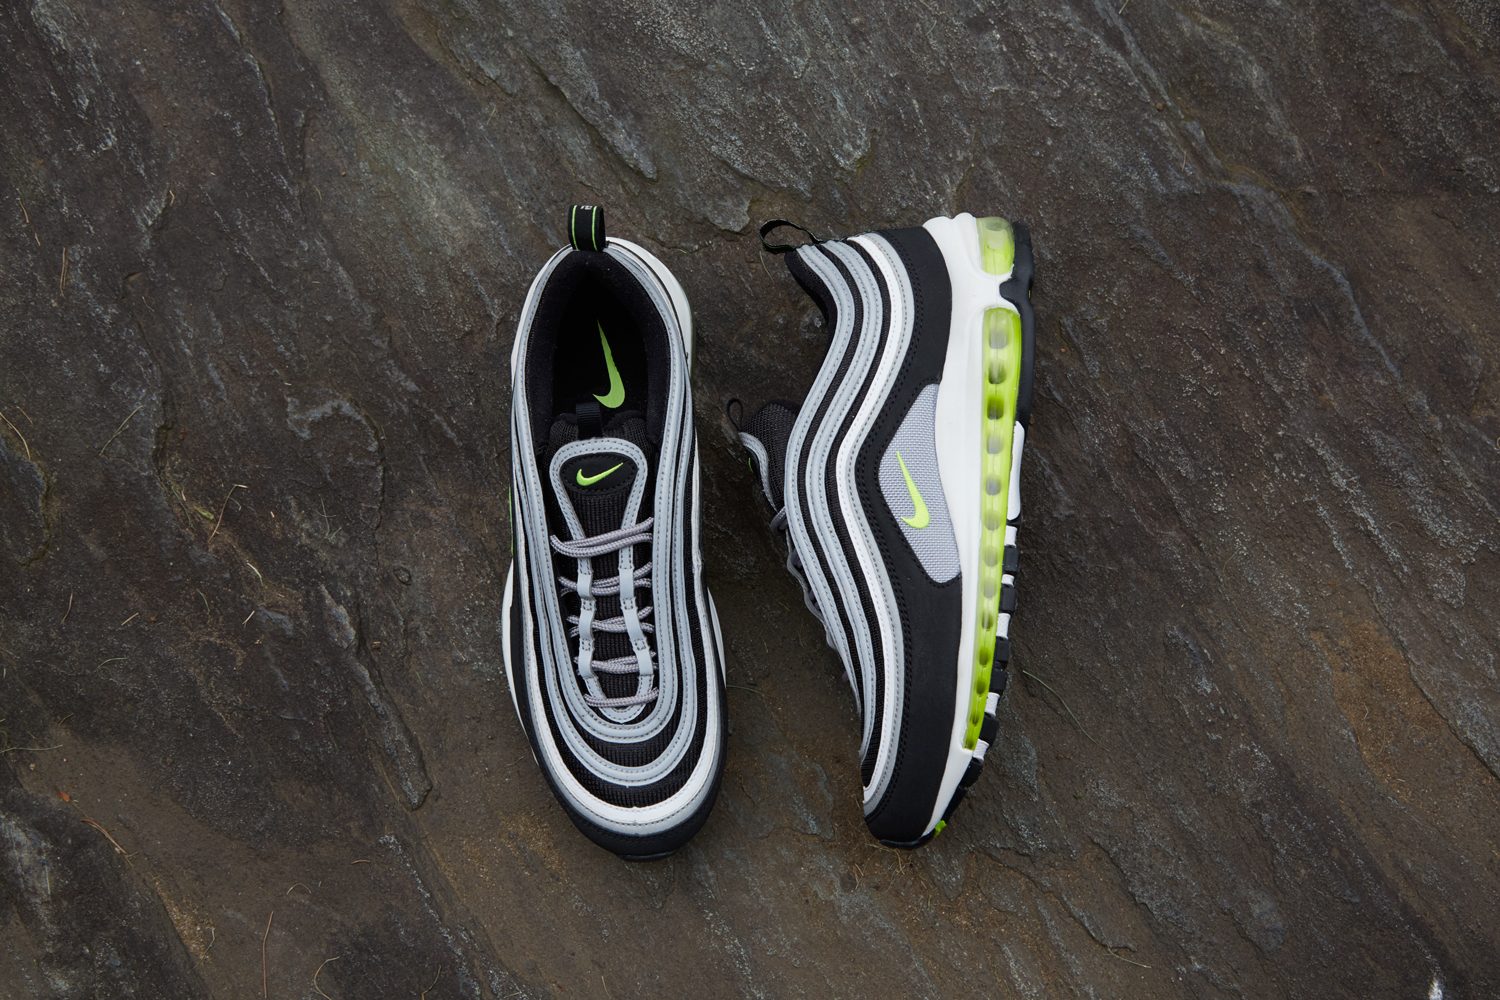 quality design 7756d 90aa2 Nike Air Max 97 'Japan' - size? blog